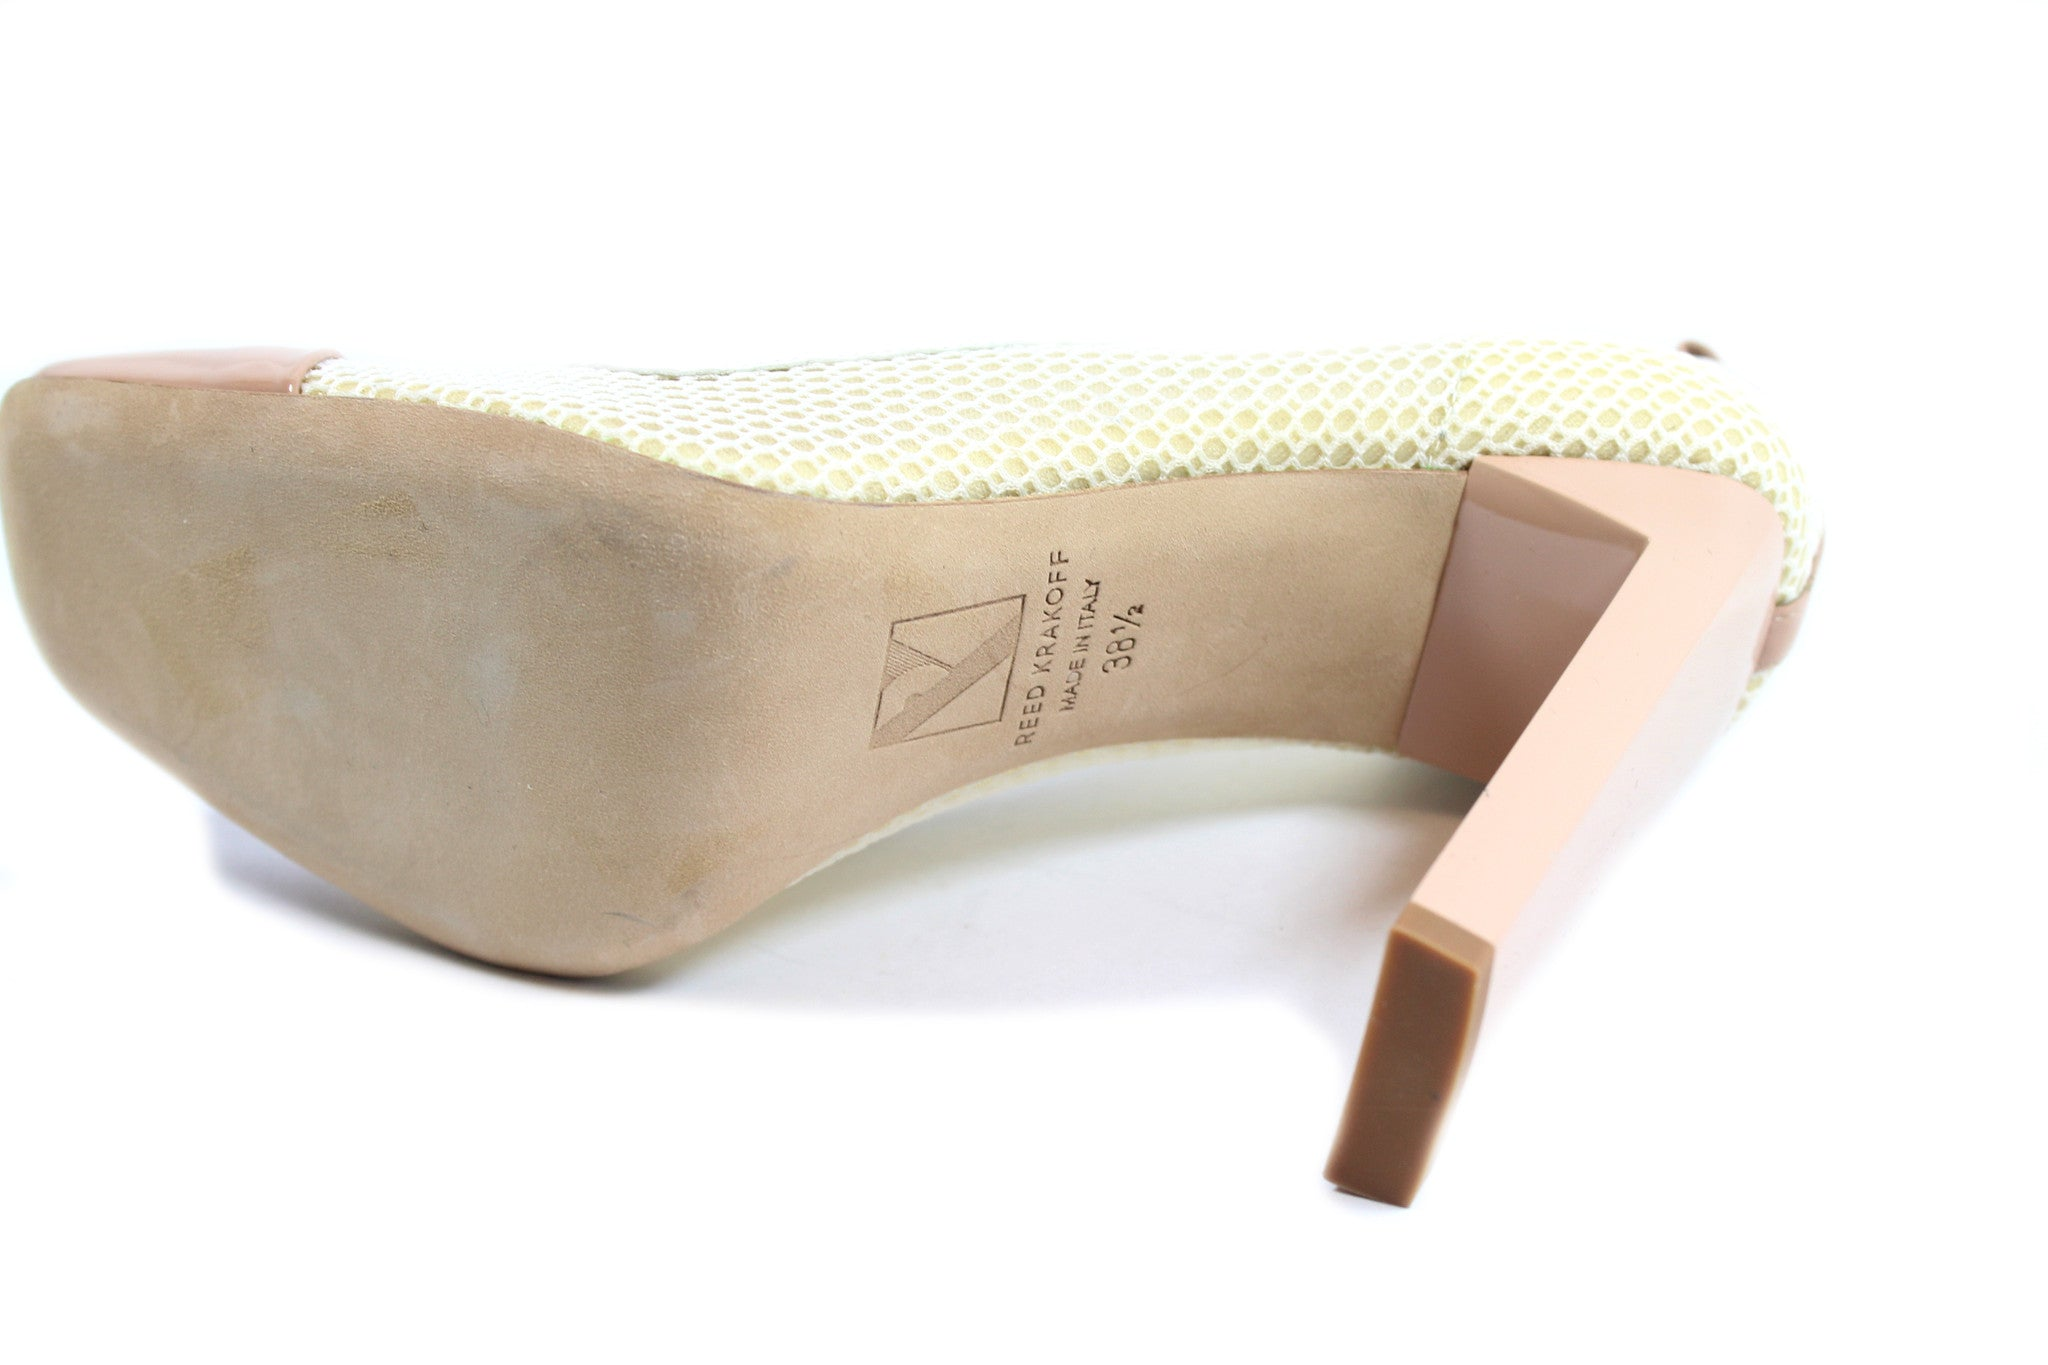 Reed Krakoff Mesh Atlas Nude and White Pumps (Size 38.5) - Encore Consignment - 11